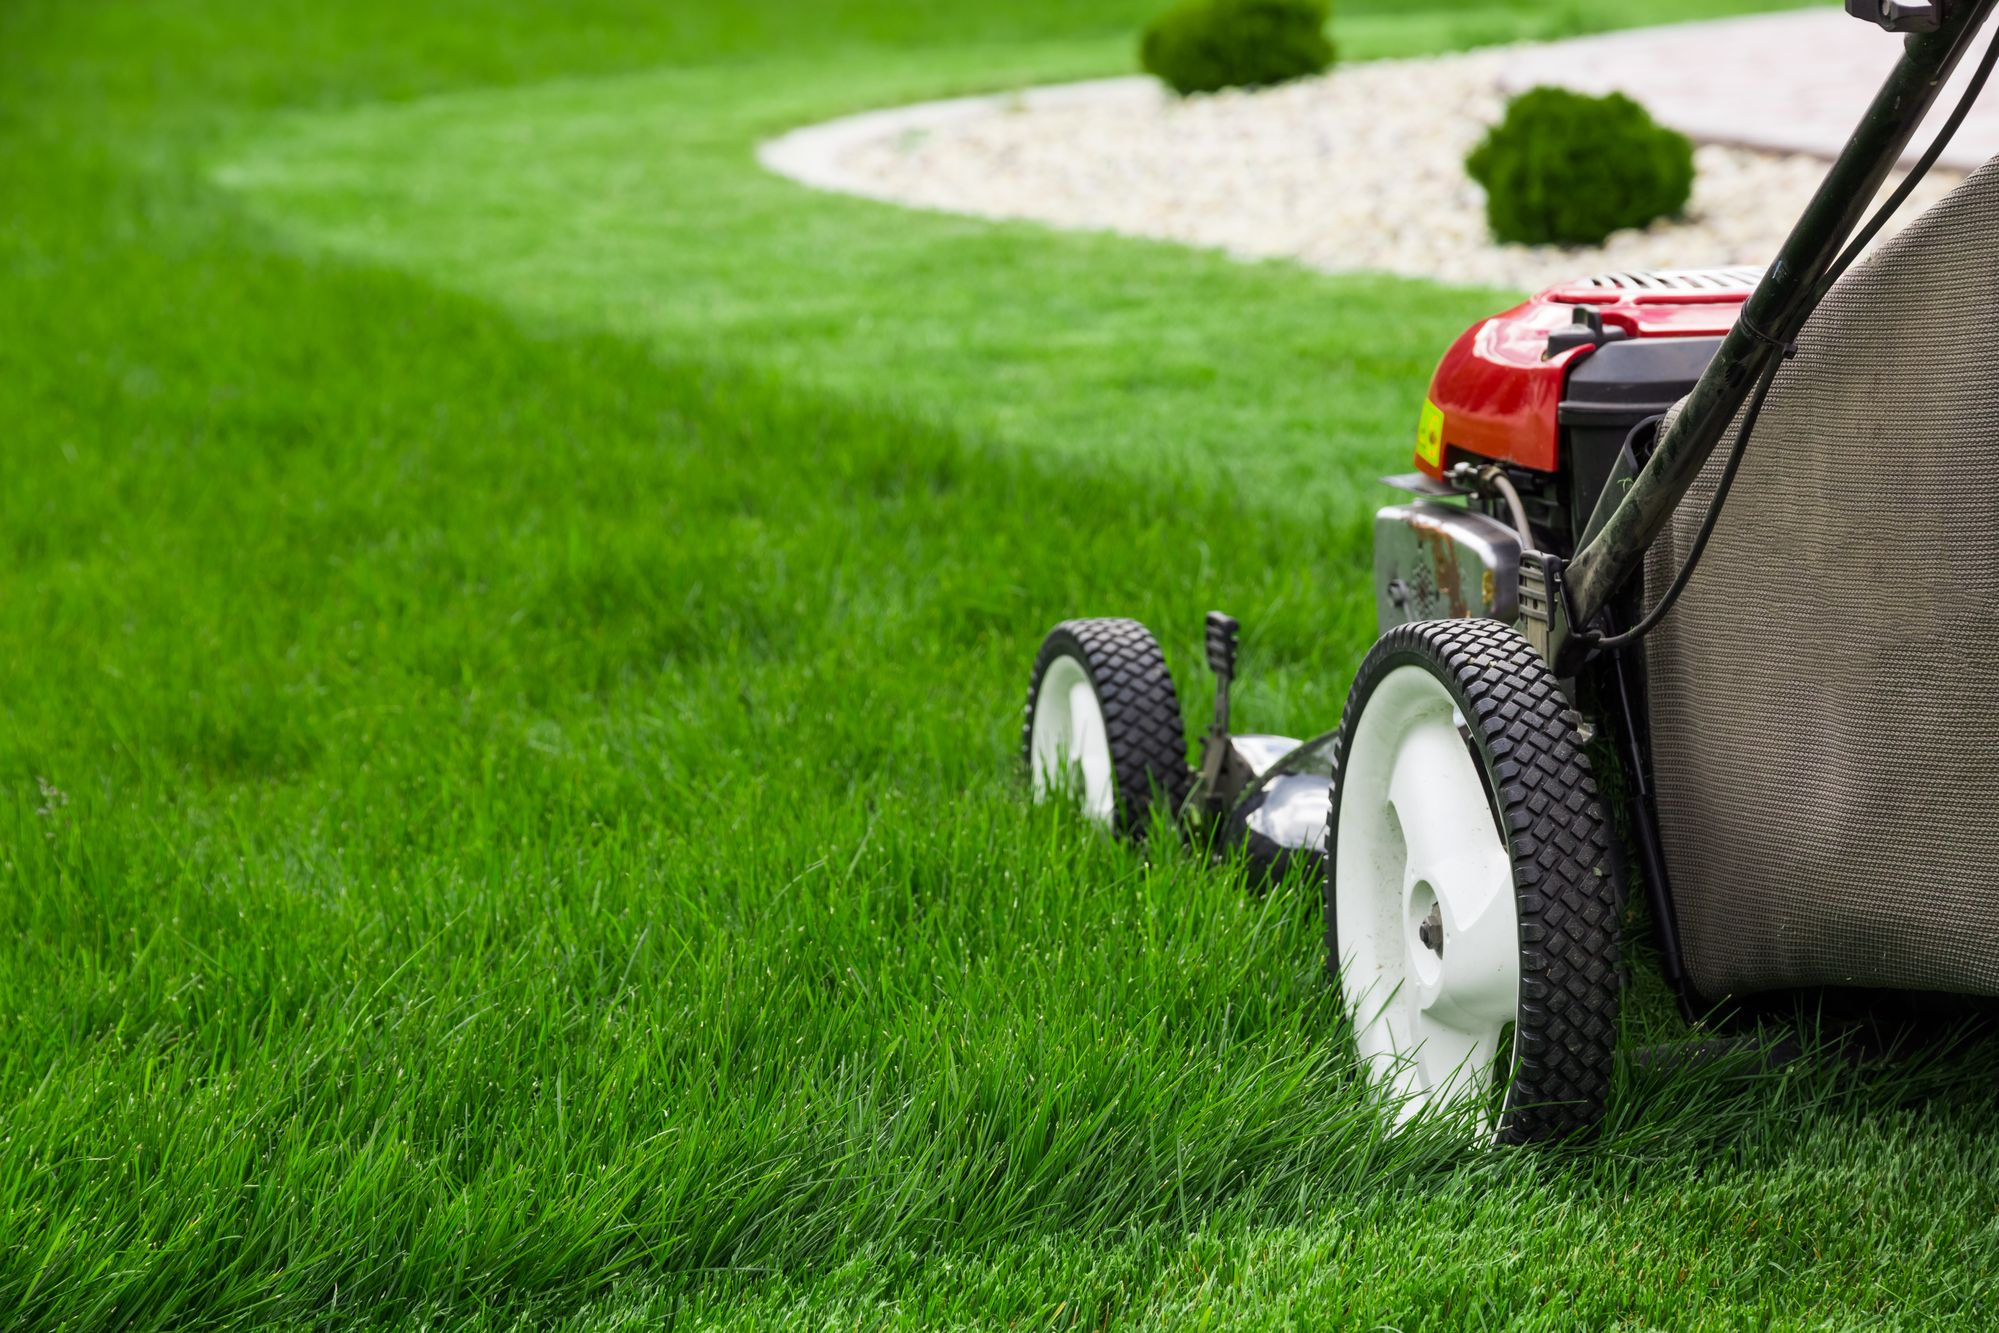 Lawn Mower Safety Tips Lawn Care Lawn Care Tips Lawn Maintenance